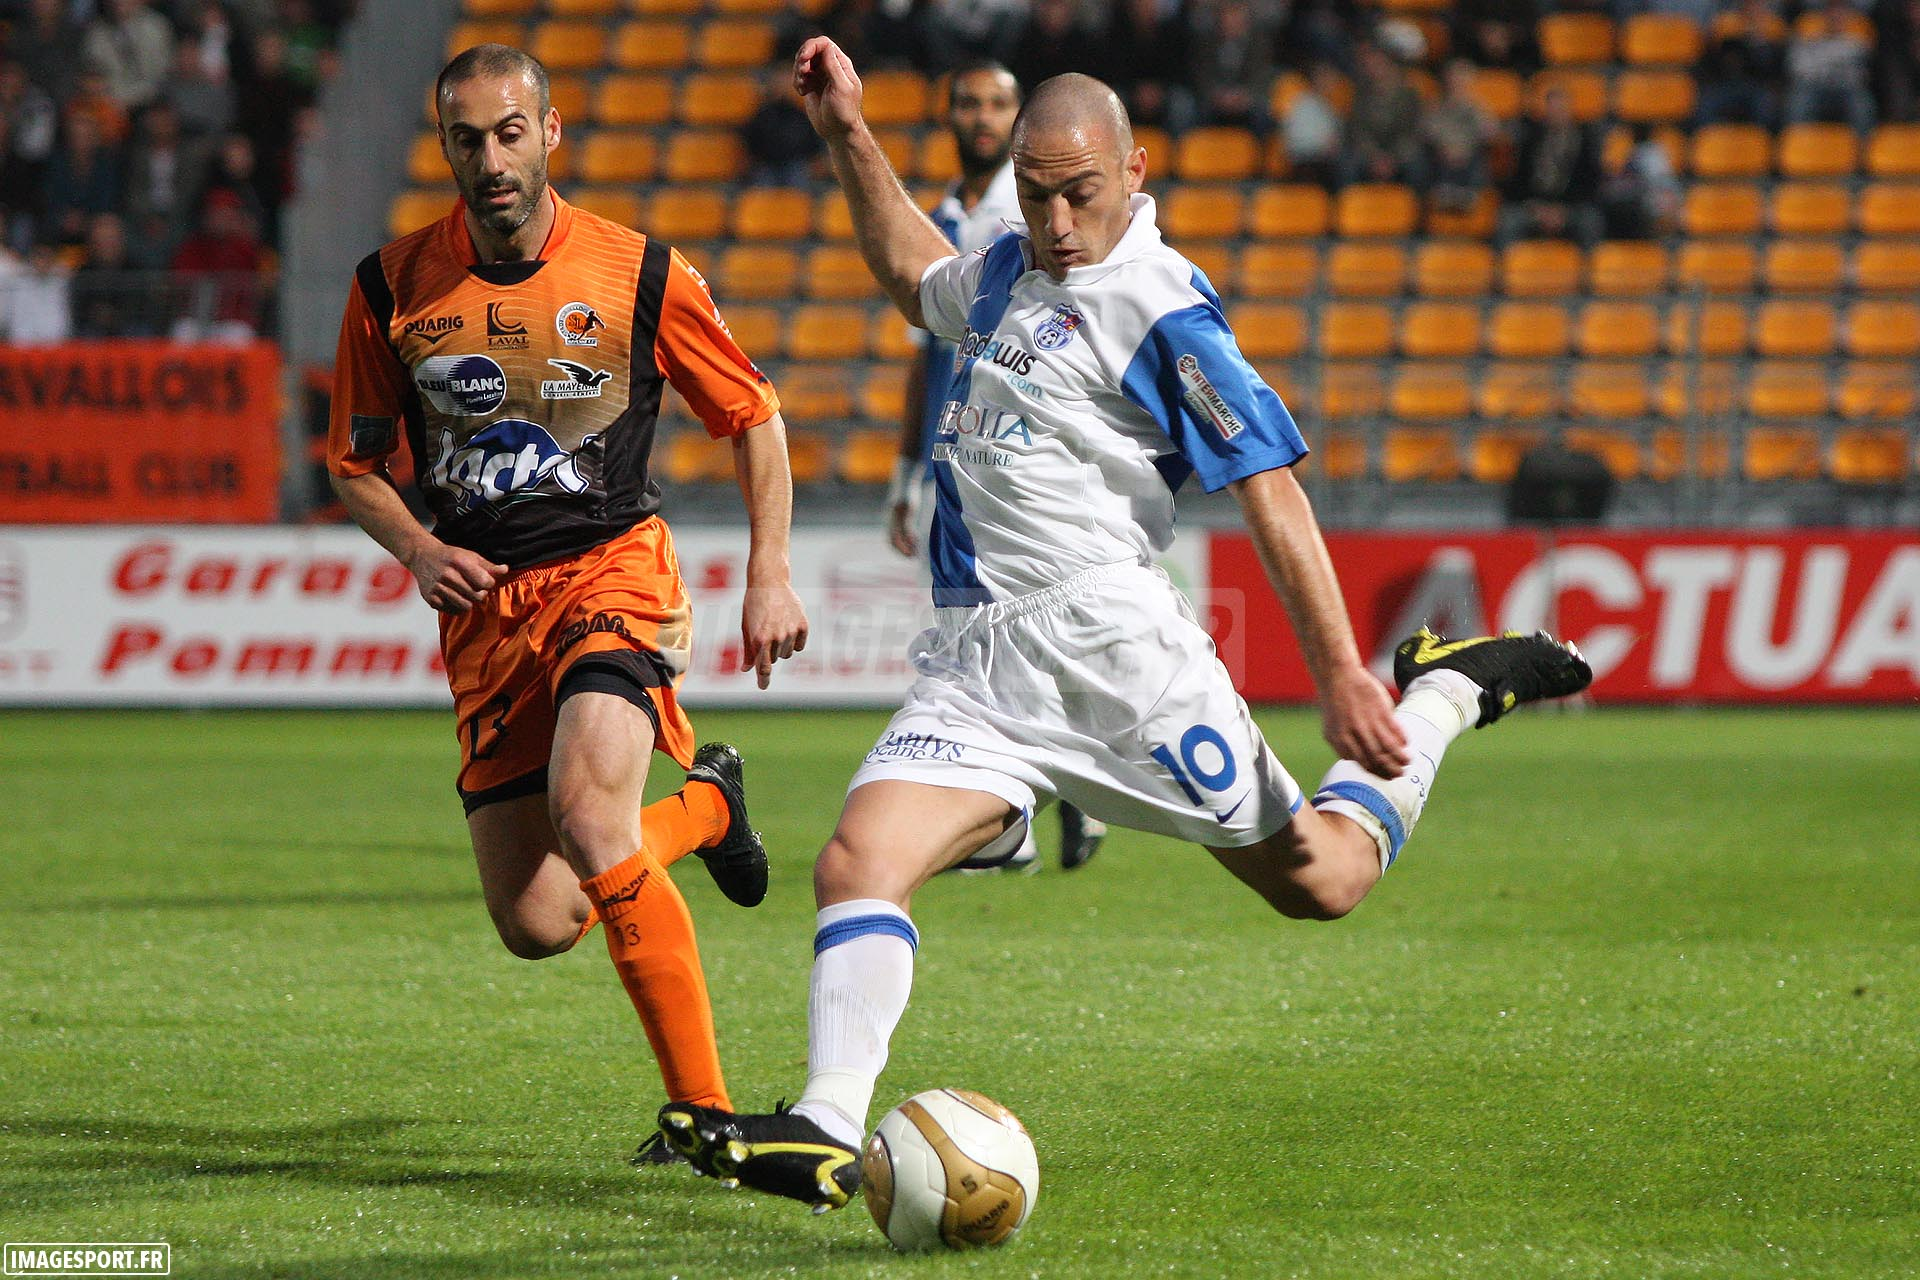 Stade Lavallois- SO Cassis Carnoux (2-2)